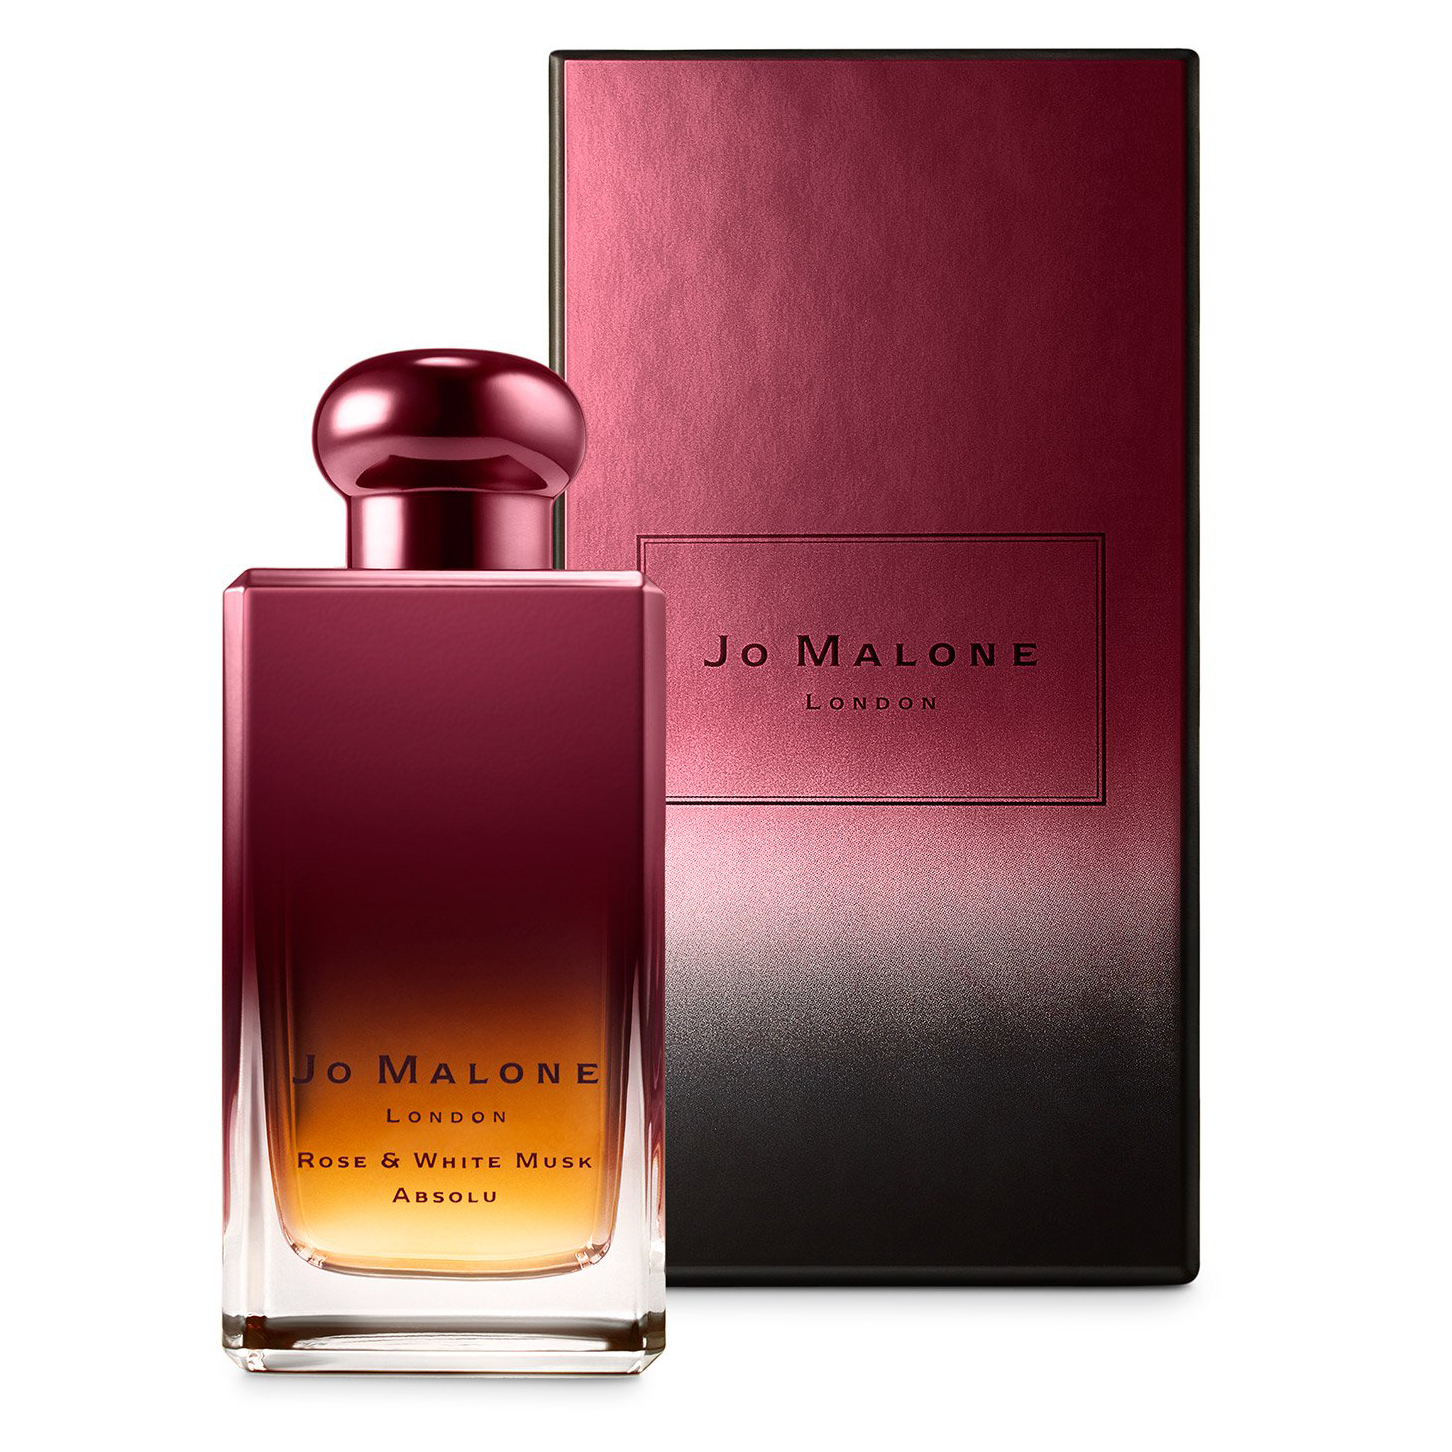 Jo Malone ROSE & WHITE MUSK ABSOLU